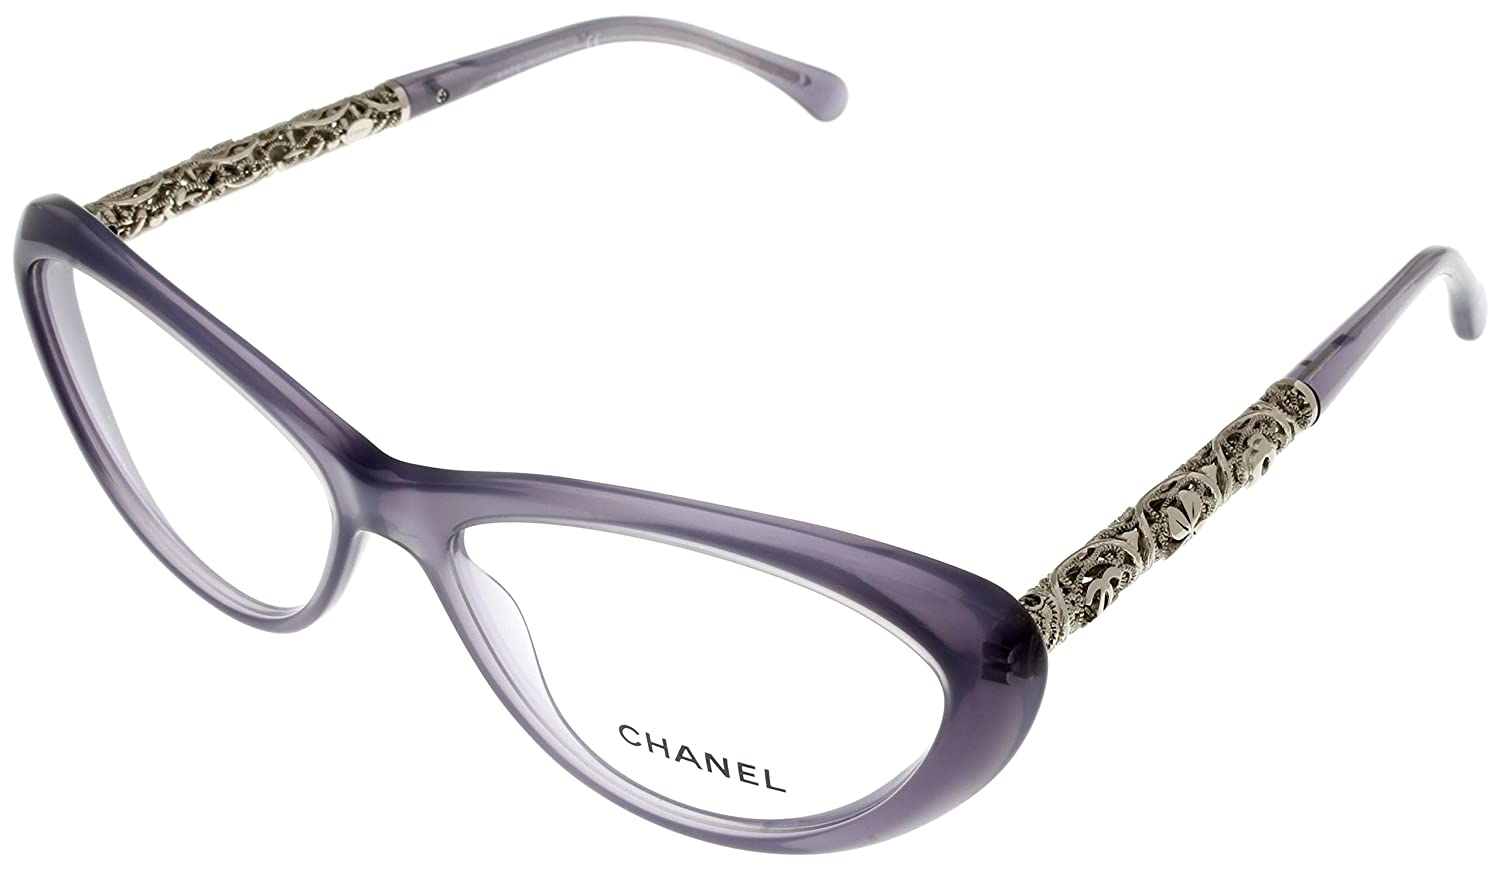 Amazon.com: Chanel Prescription Eyewear Frames Bijou Lilac Women ...